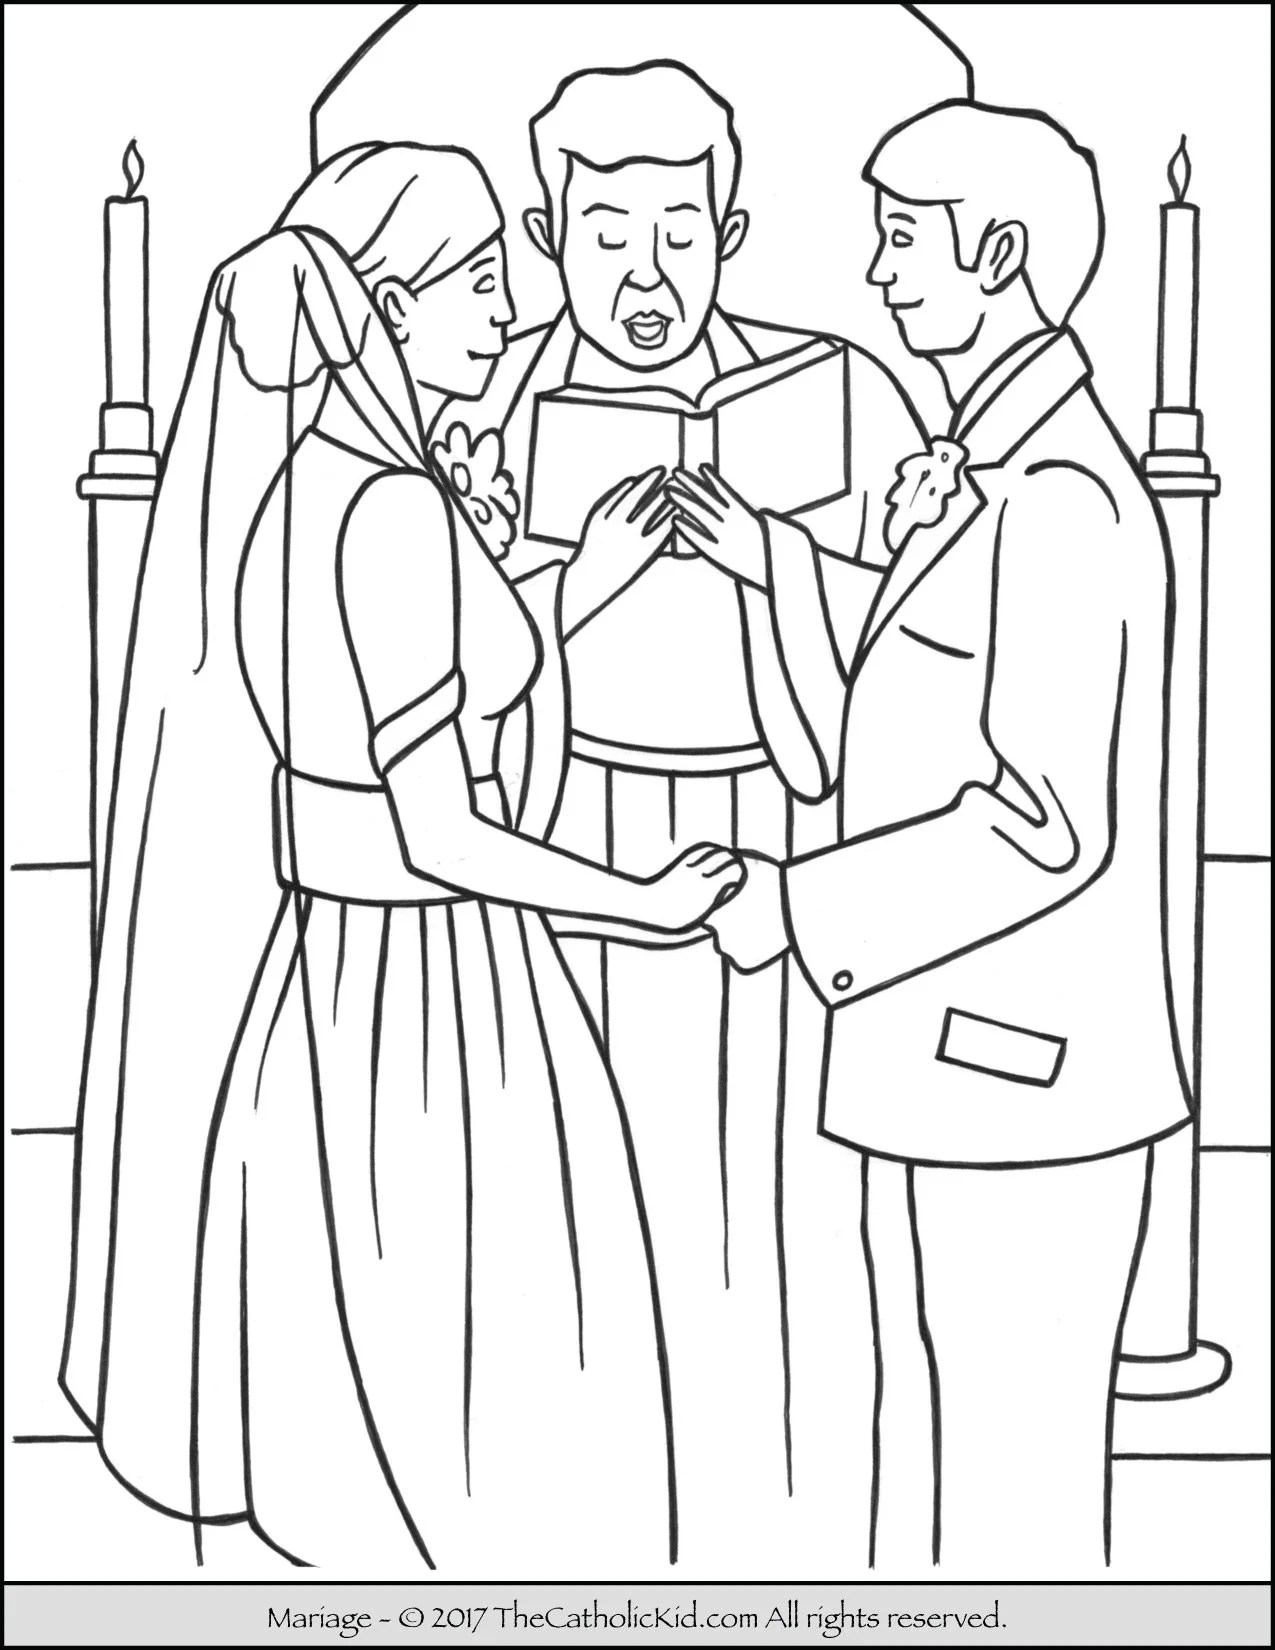 Sacrament Of Marriage Coloring Page